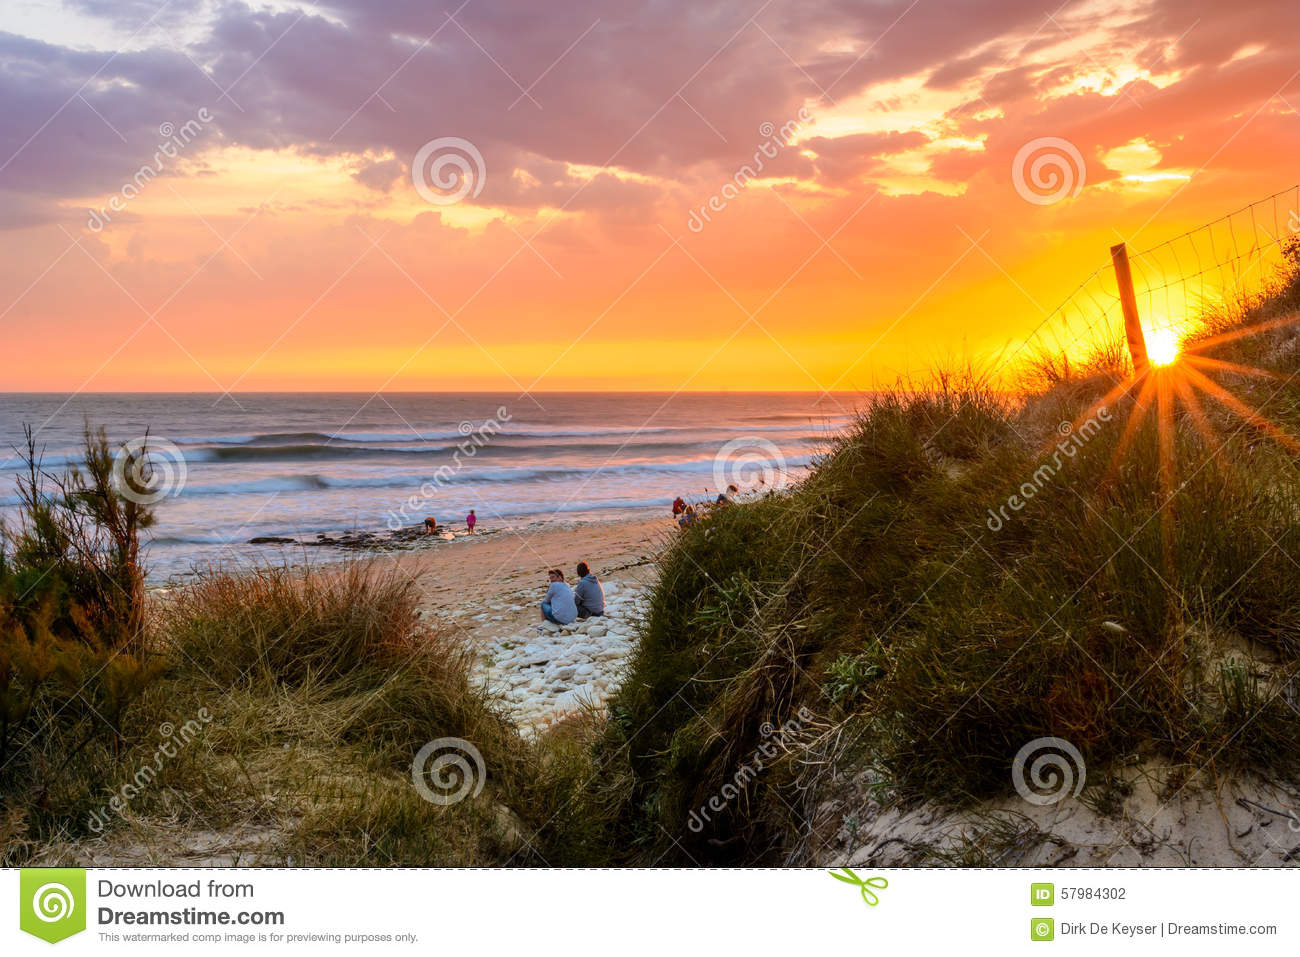 People on a French beach at sunset